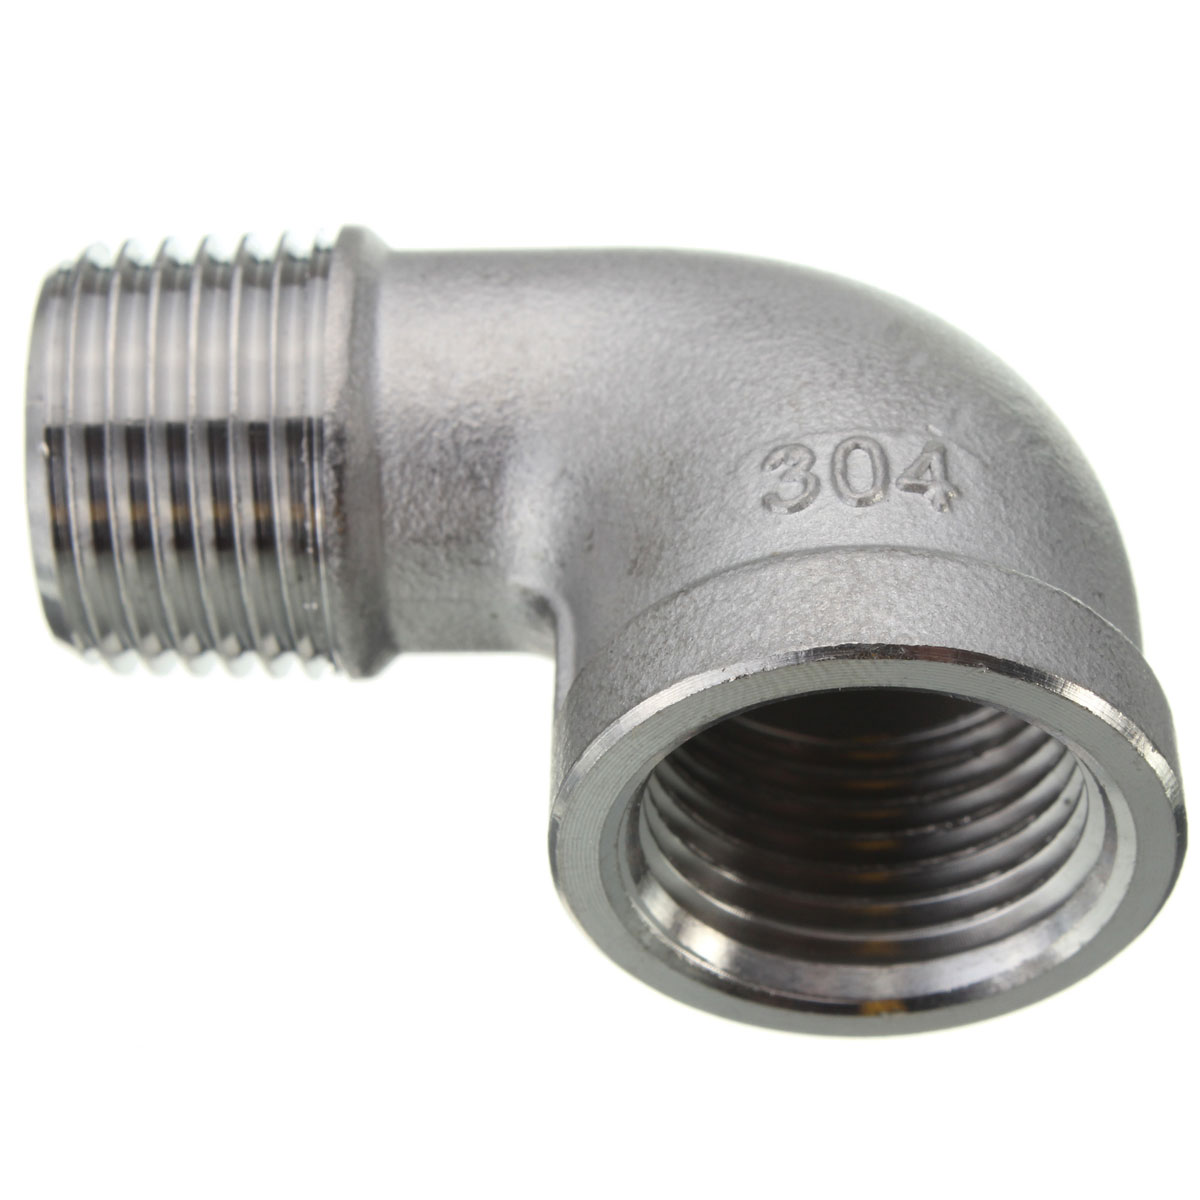 Female male street elbow threaded pipe fitting